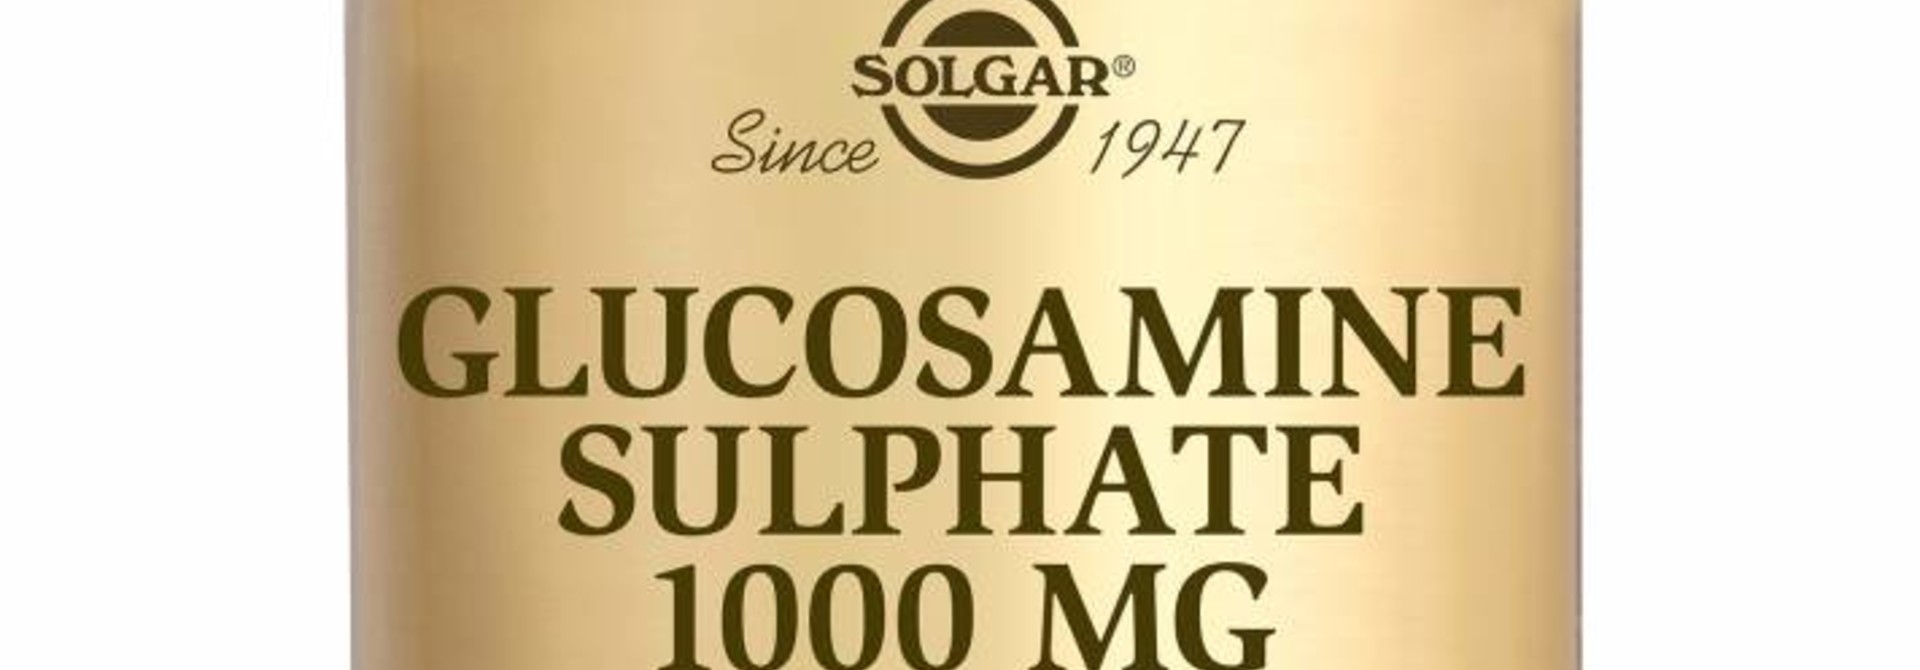 Glucosamine Sulphate 1000 mg 60 tabletten